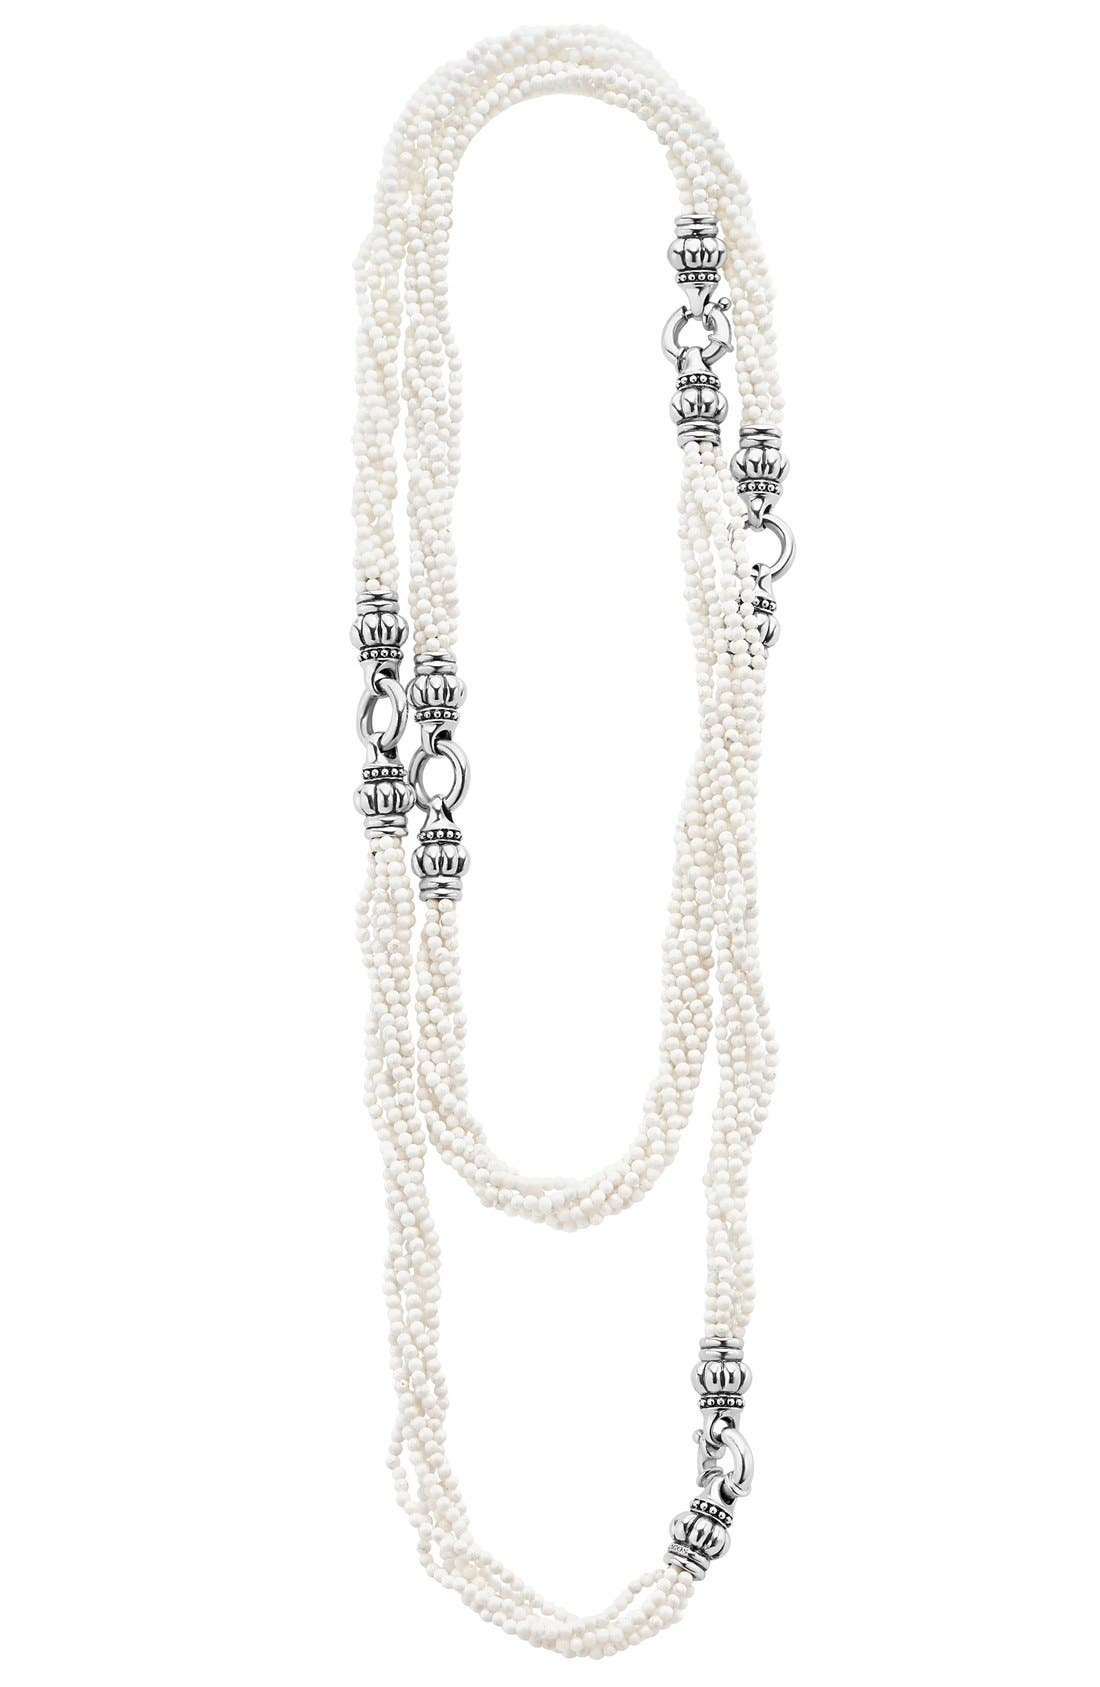 LAGOS 'Black & White Caviar' Agate Multistrand Necklace